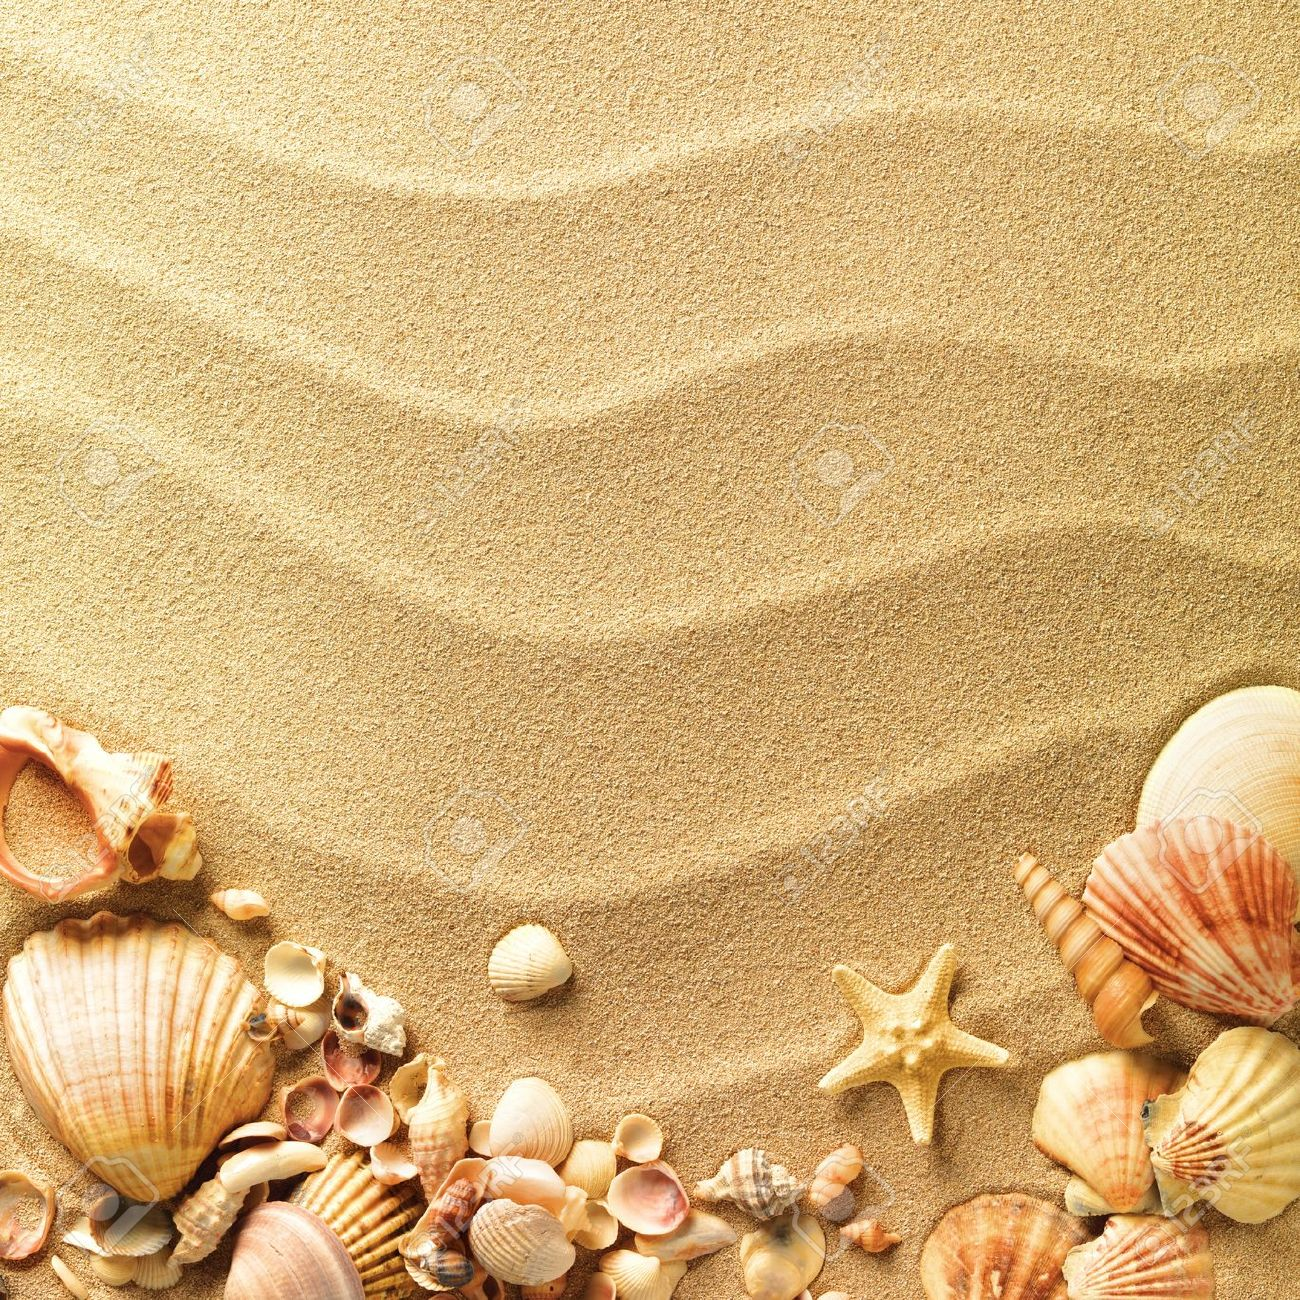 sea shells with sand as background Sea